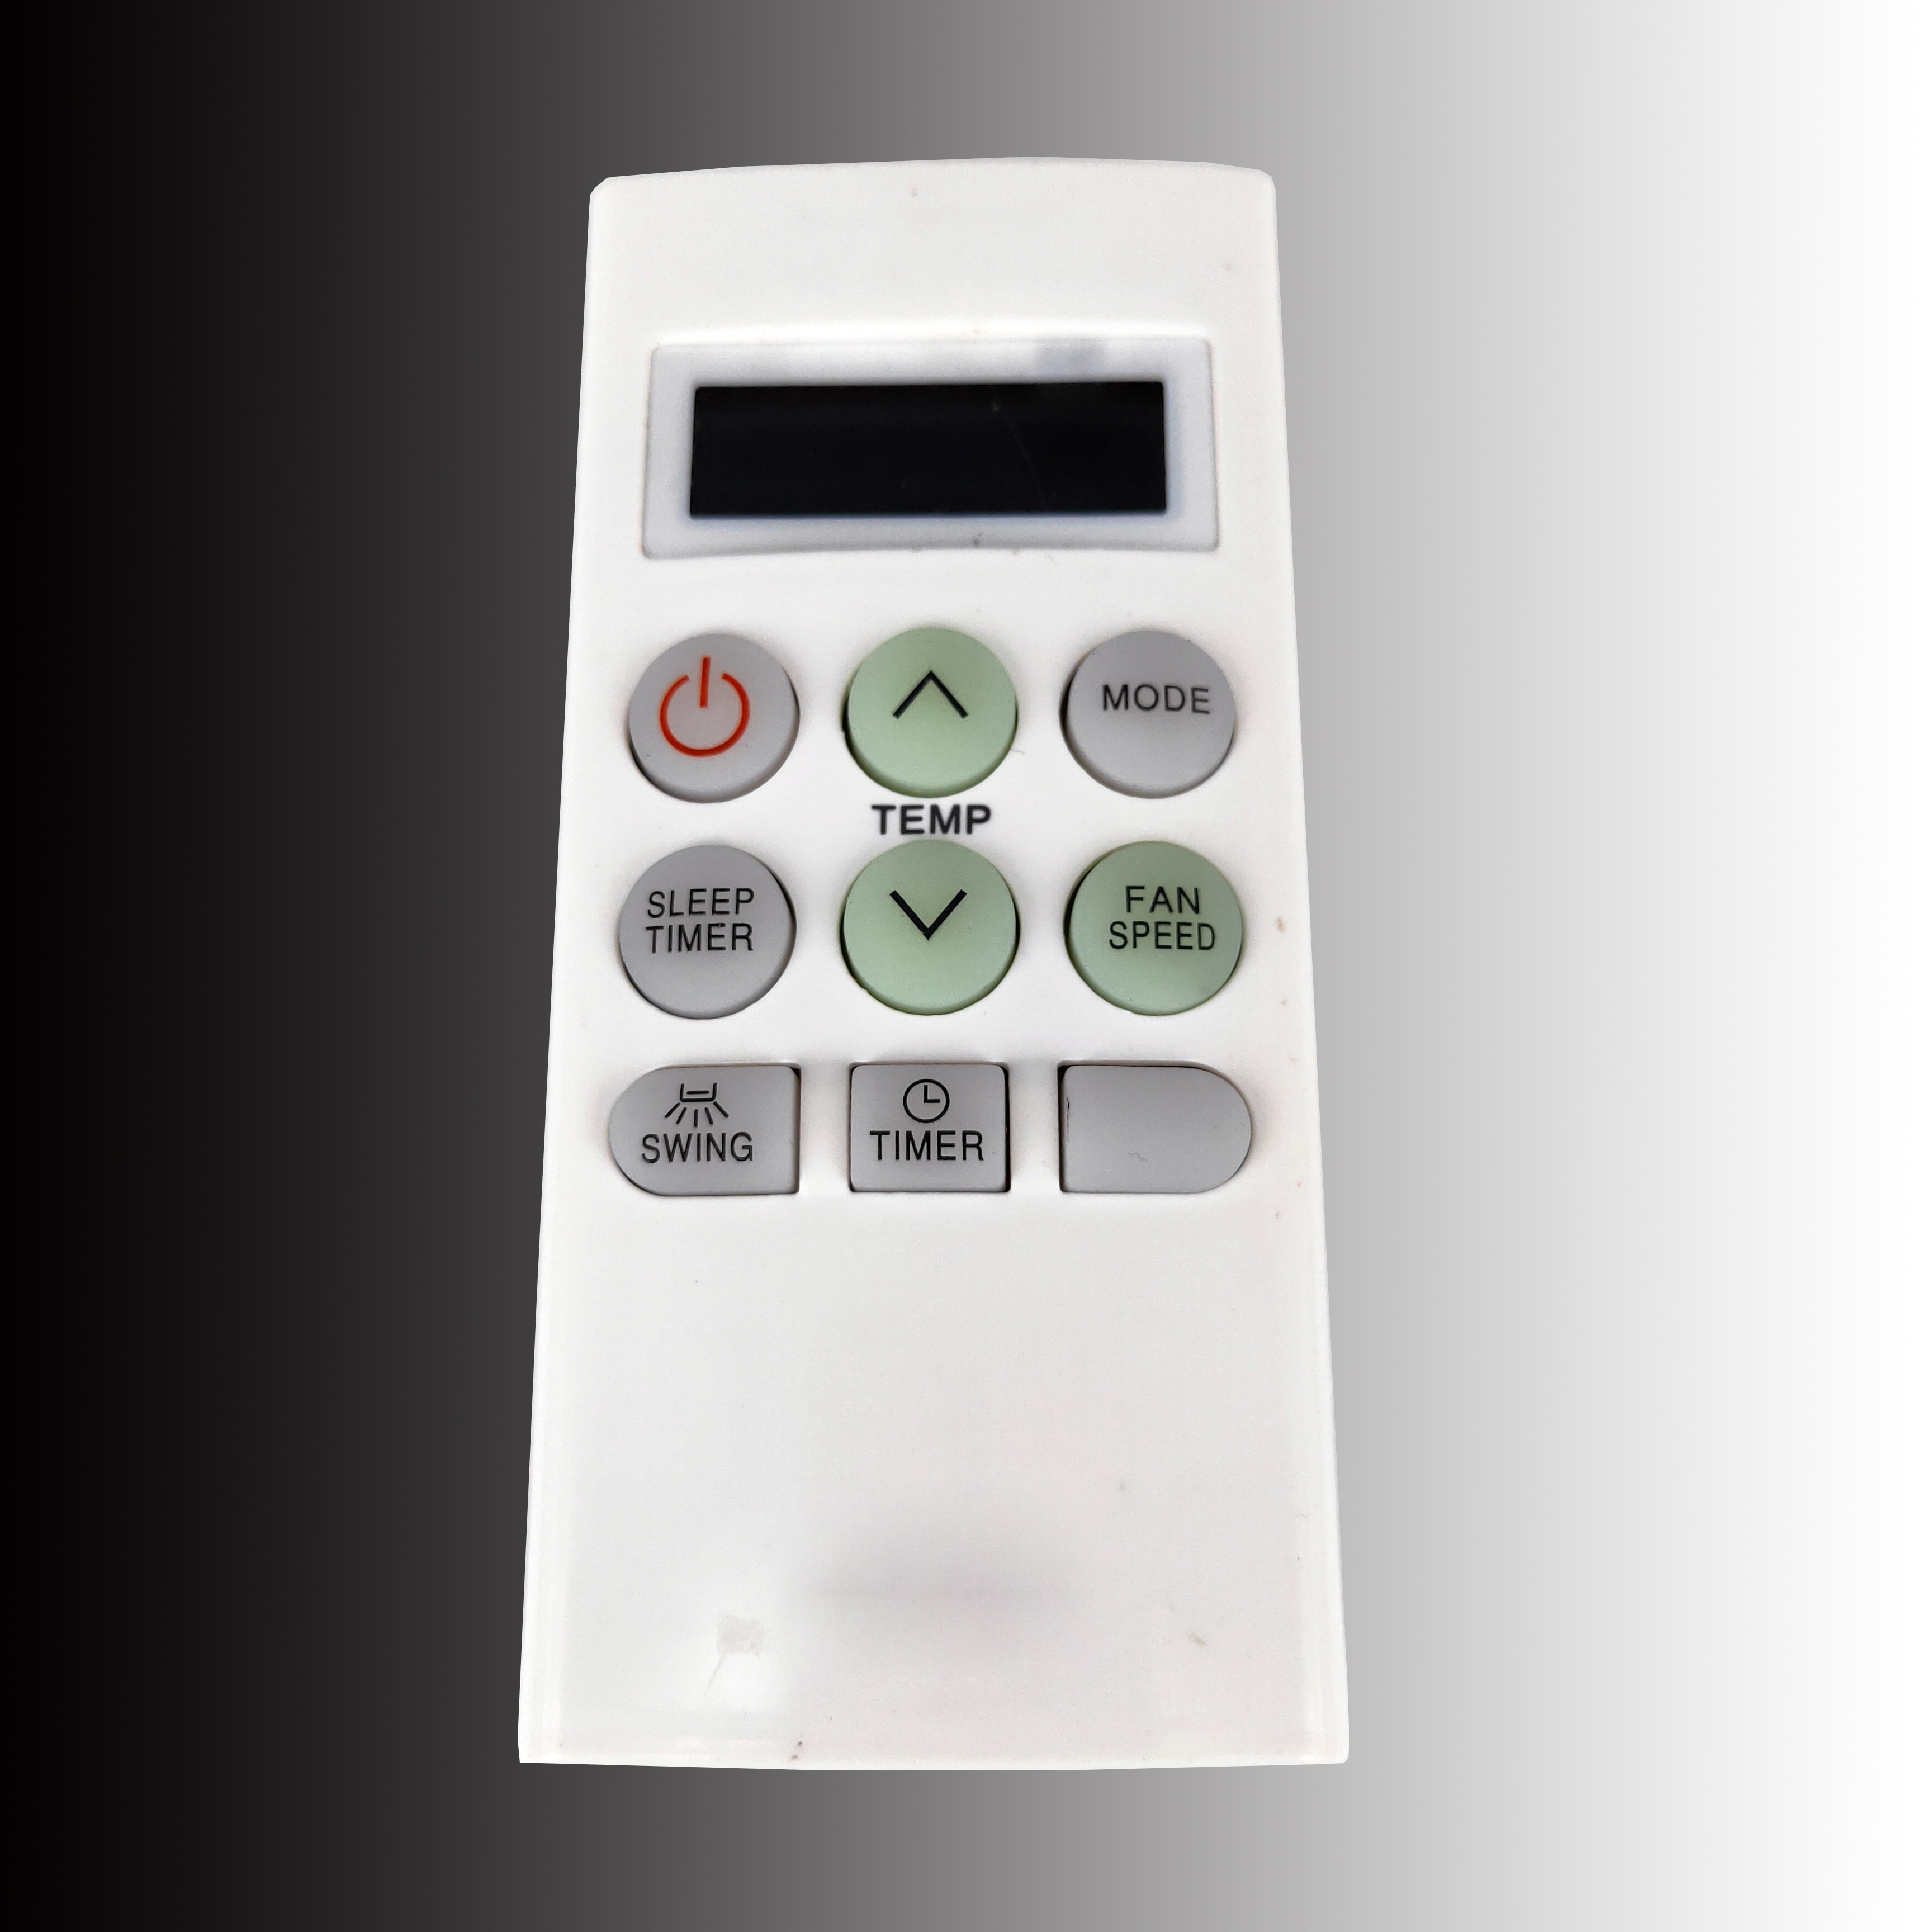 New Universal Replacement A/C Remote Controller for LG AKB73756203 AKB73756204 AC Air Conditioner controle remoto Fernbedienung недорого